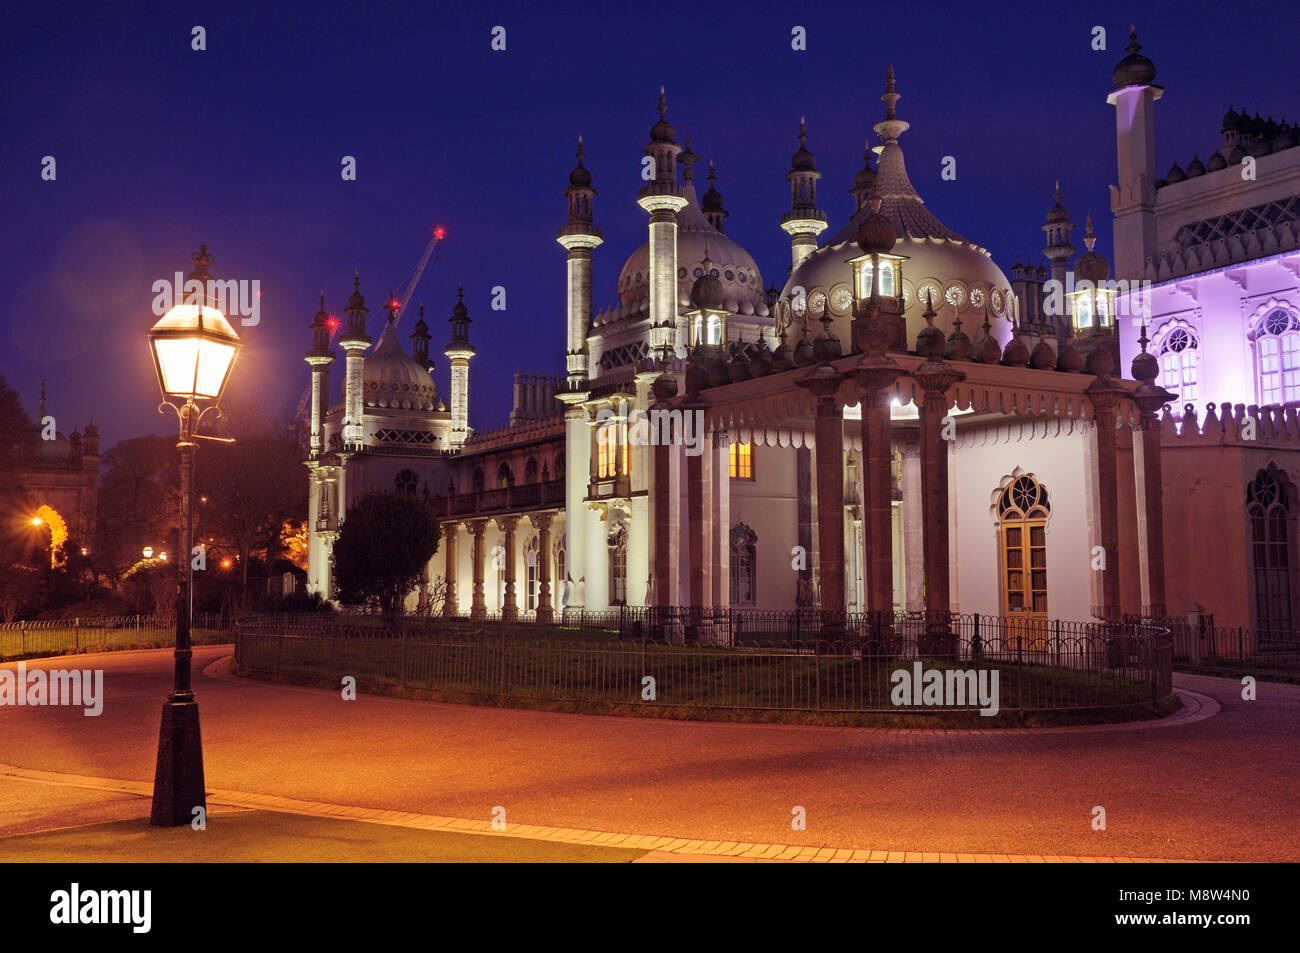 Brighton Pavilion illuminated at dusk from inside the grounds of the Royal Pavilion Garden, East Sussex, England, - Stock Image